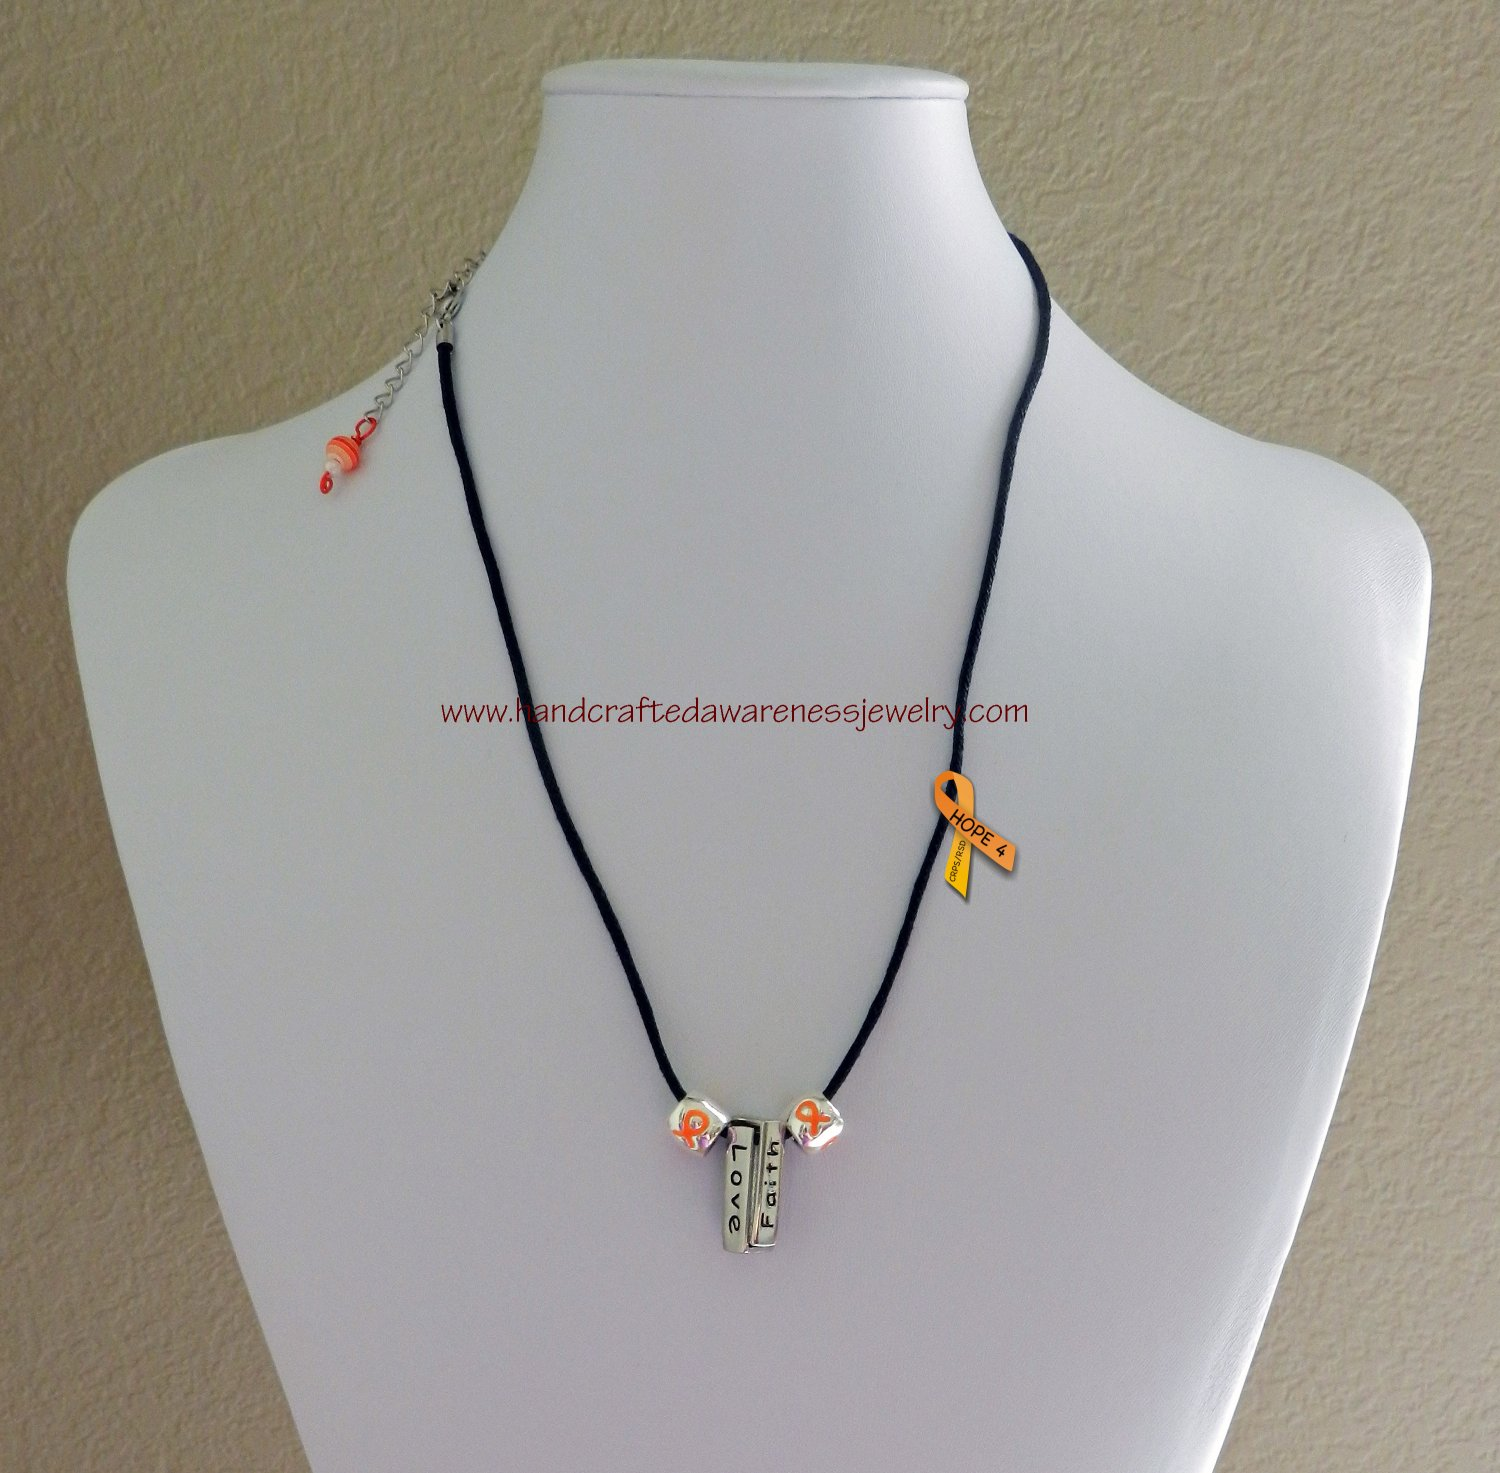 CRPS, RSD, Orange, Awareness, Black, Leather, Necklace with Inspirational Charm Pendant